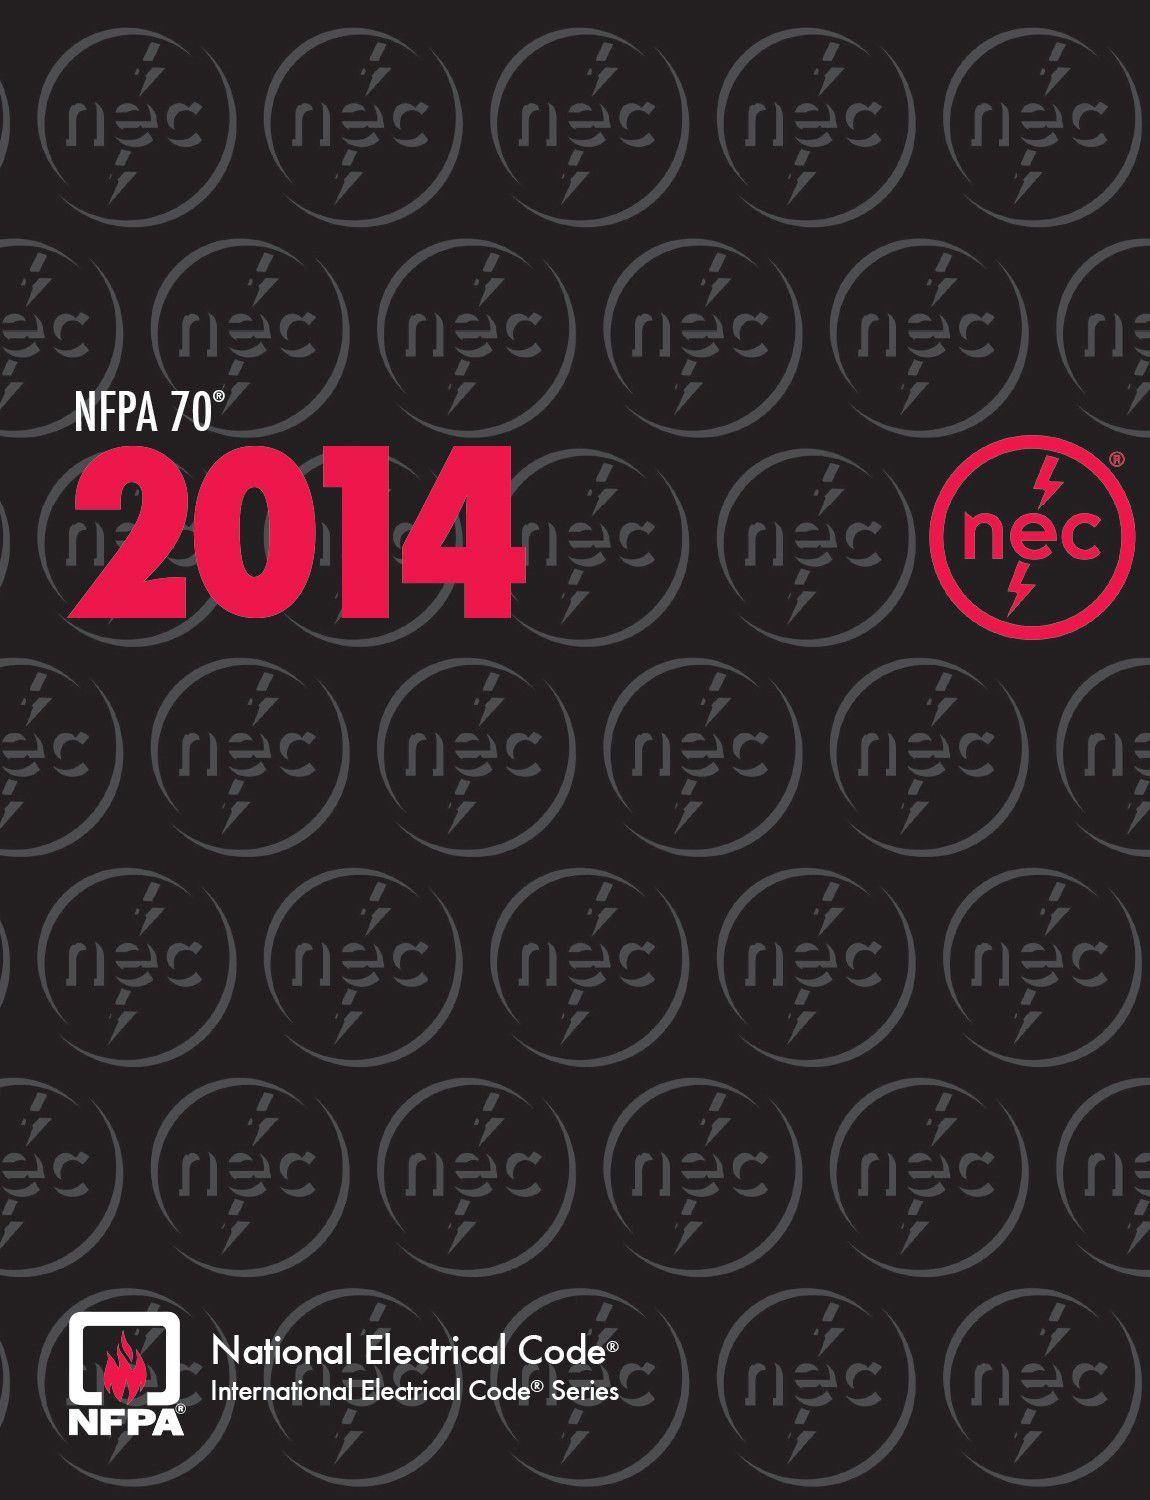 NFPA NEC 2014 National Electrical Code by National Fire